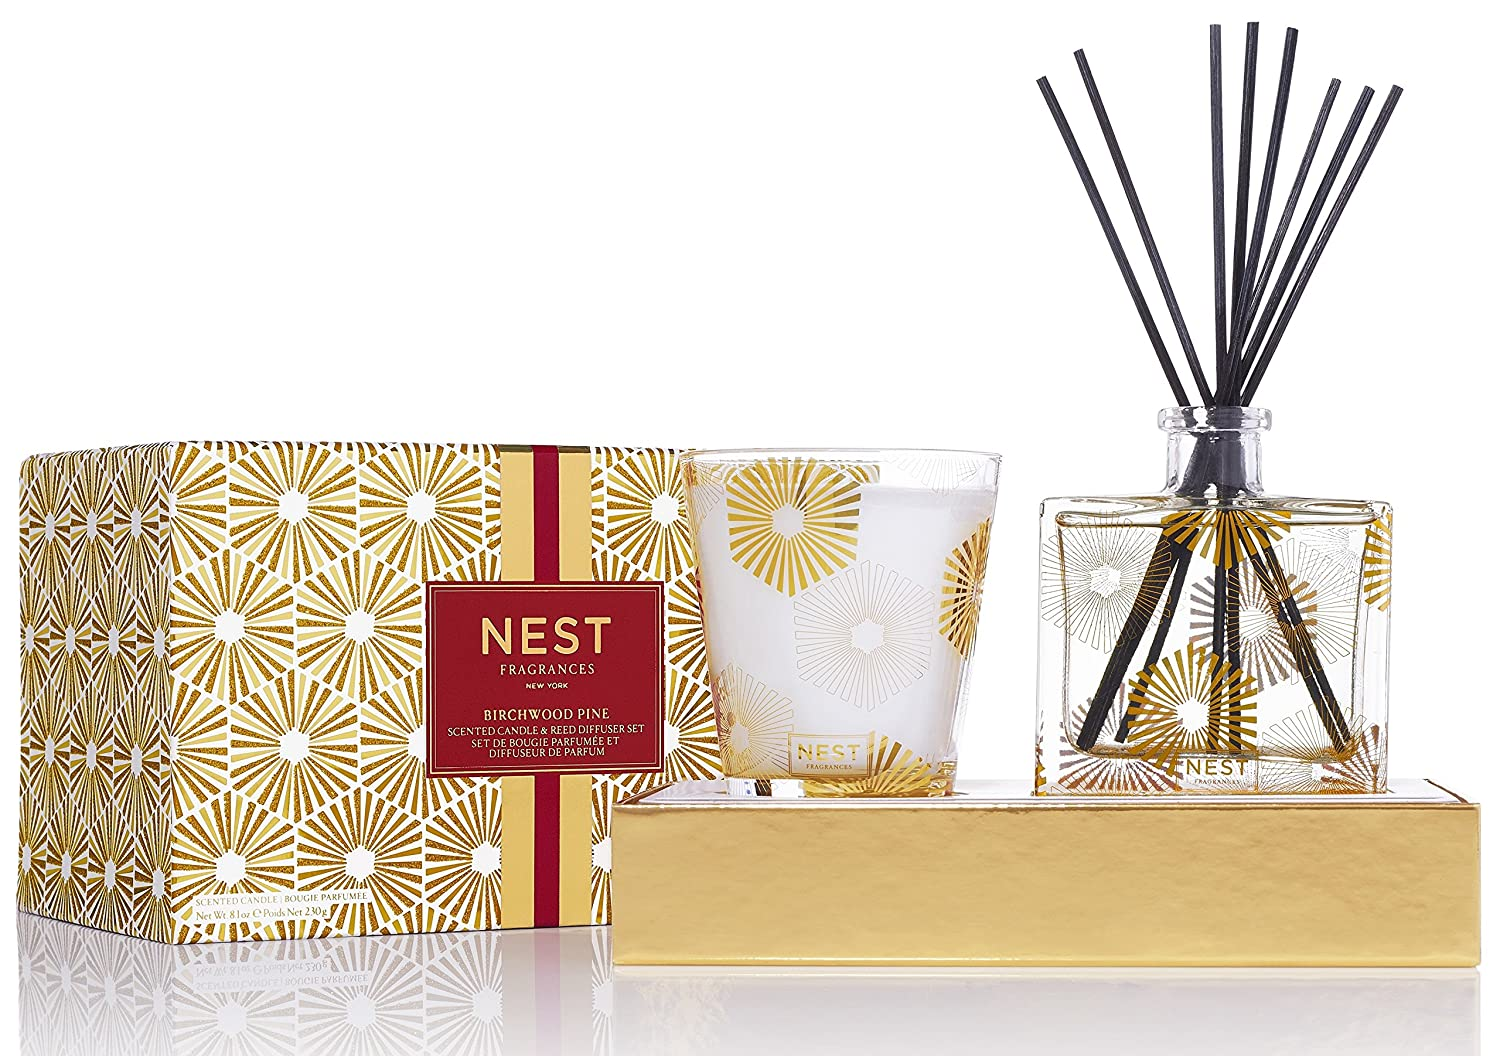 NEST Fragrances Classic Candle & Reed Diffuser Set- Birchwood Pine NEST58BP001